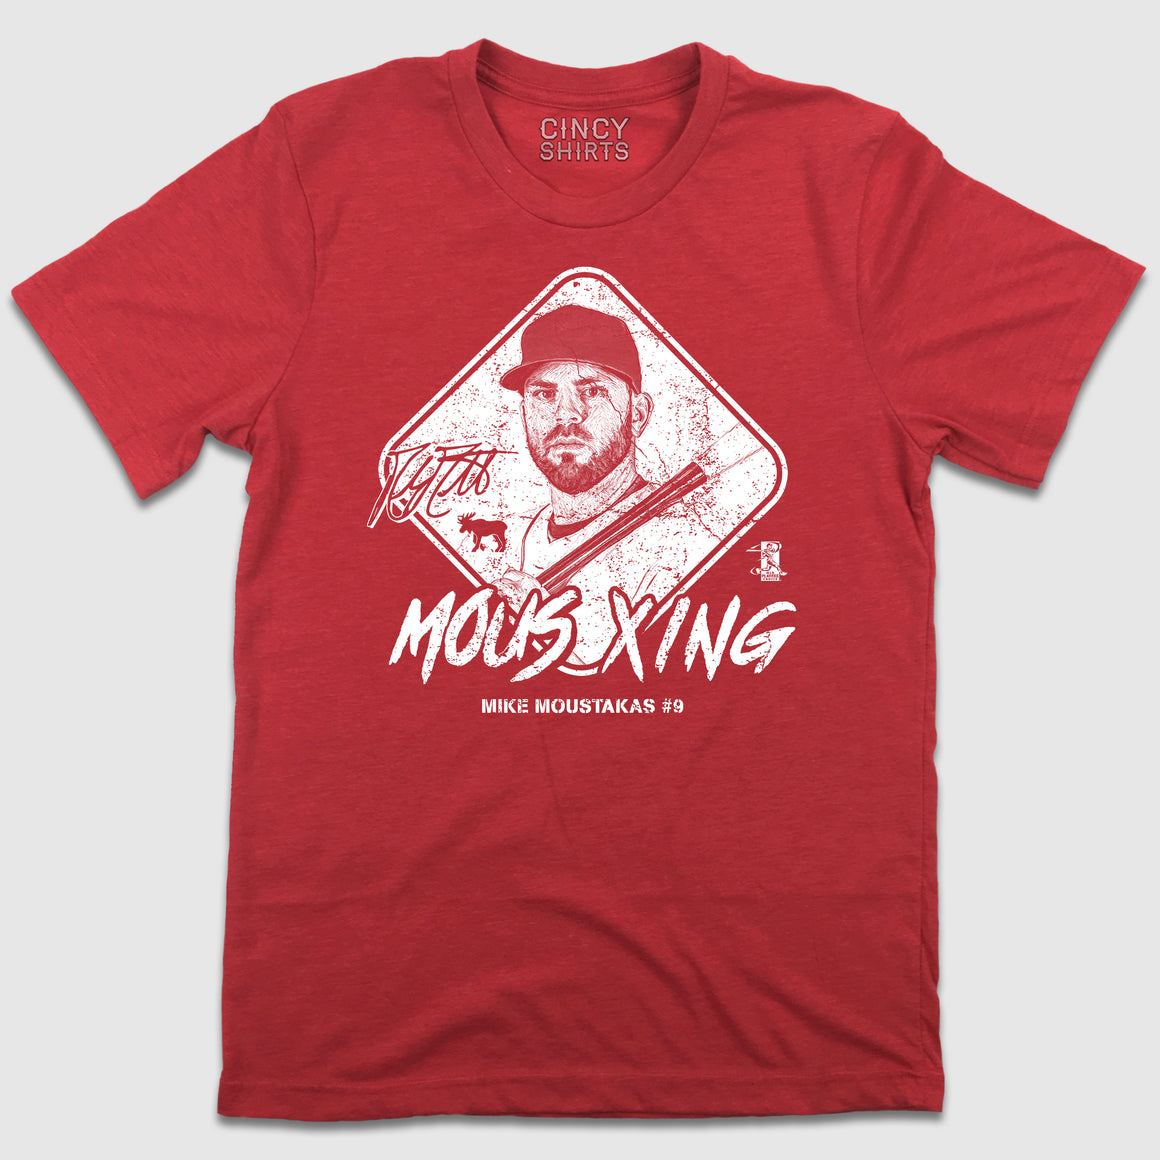 Mous X-ing - Official Mike Moustakas MLBPA T-shirt